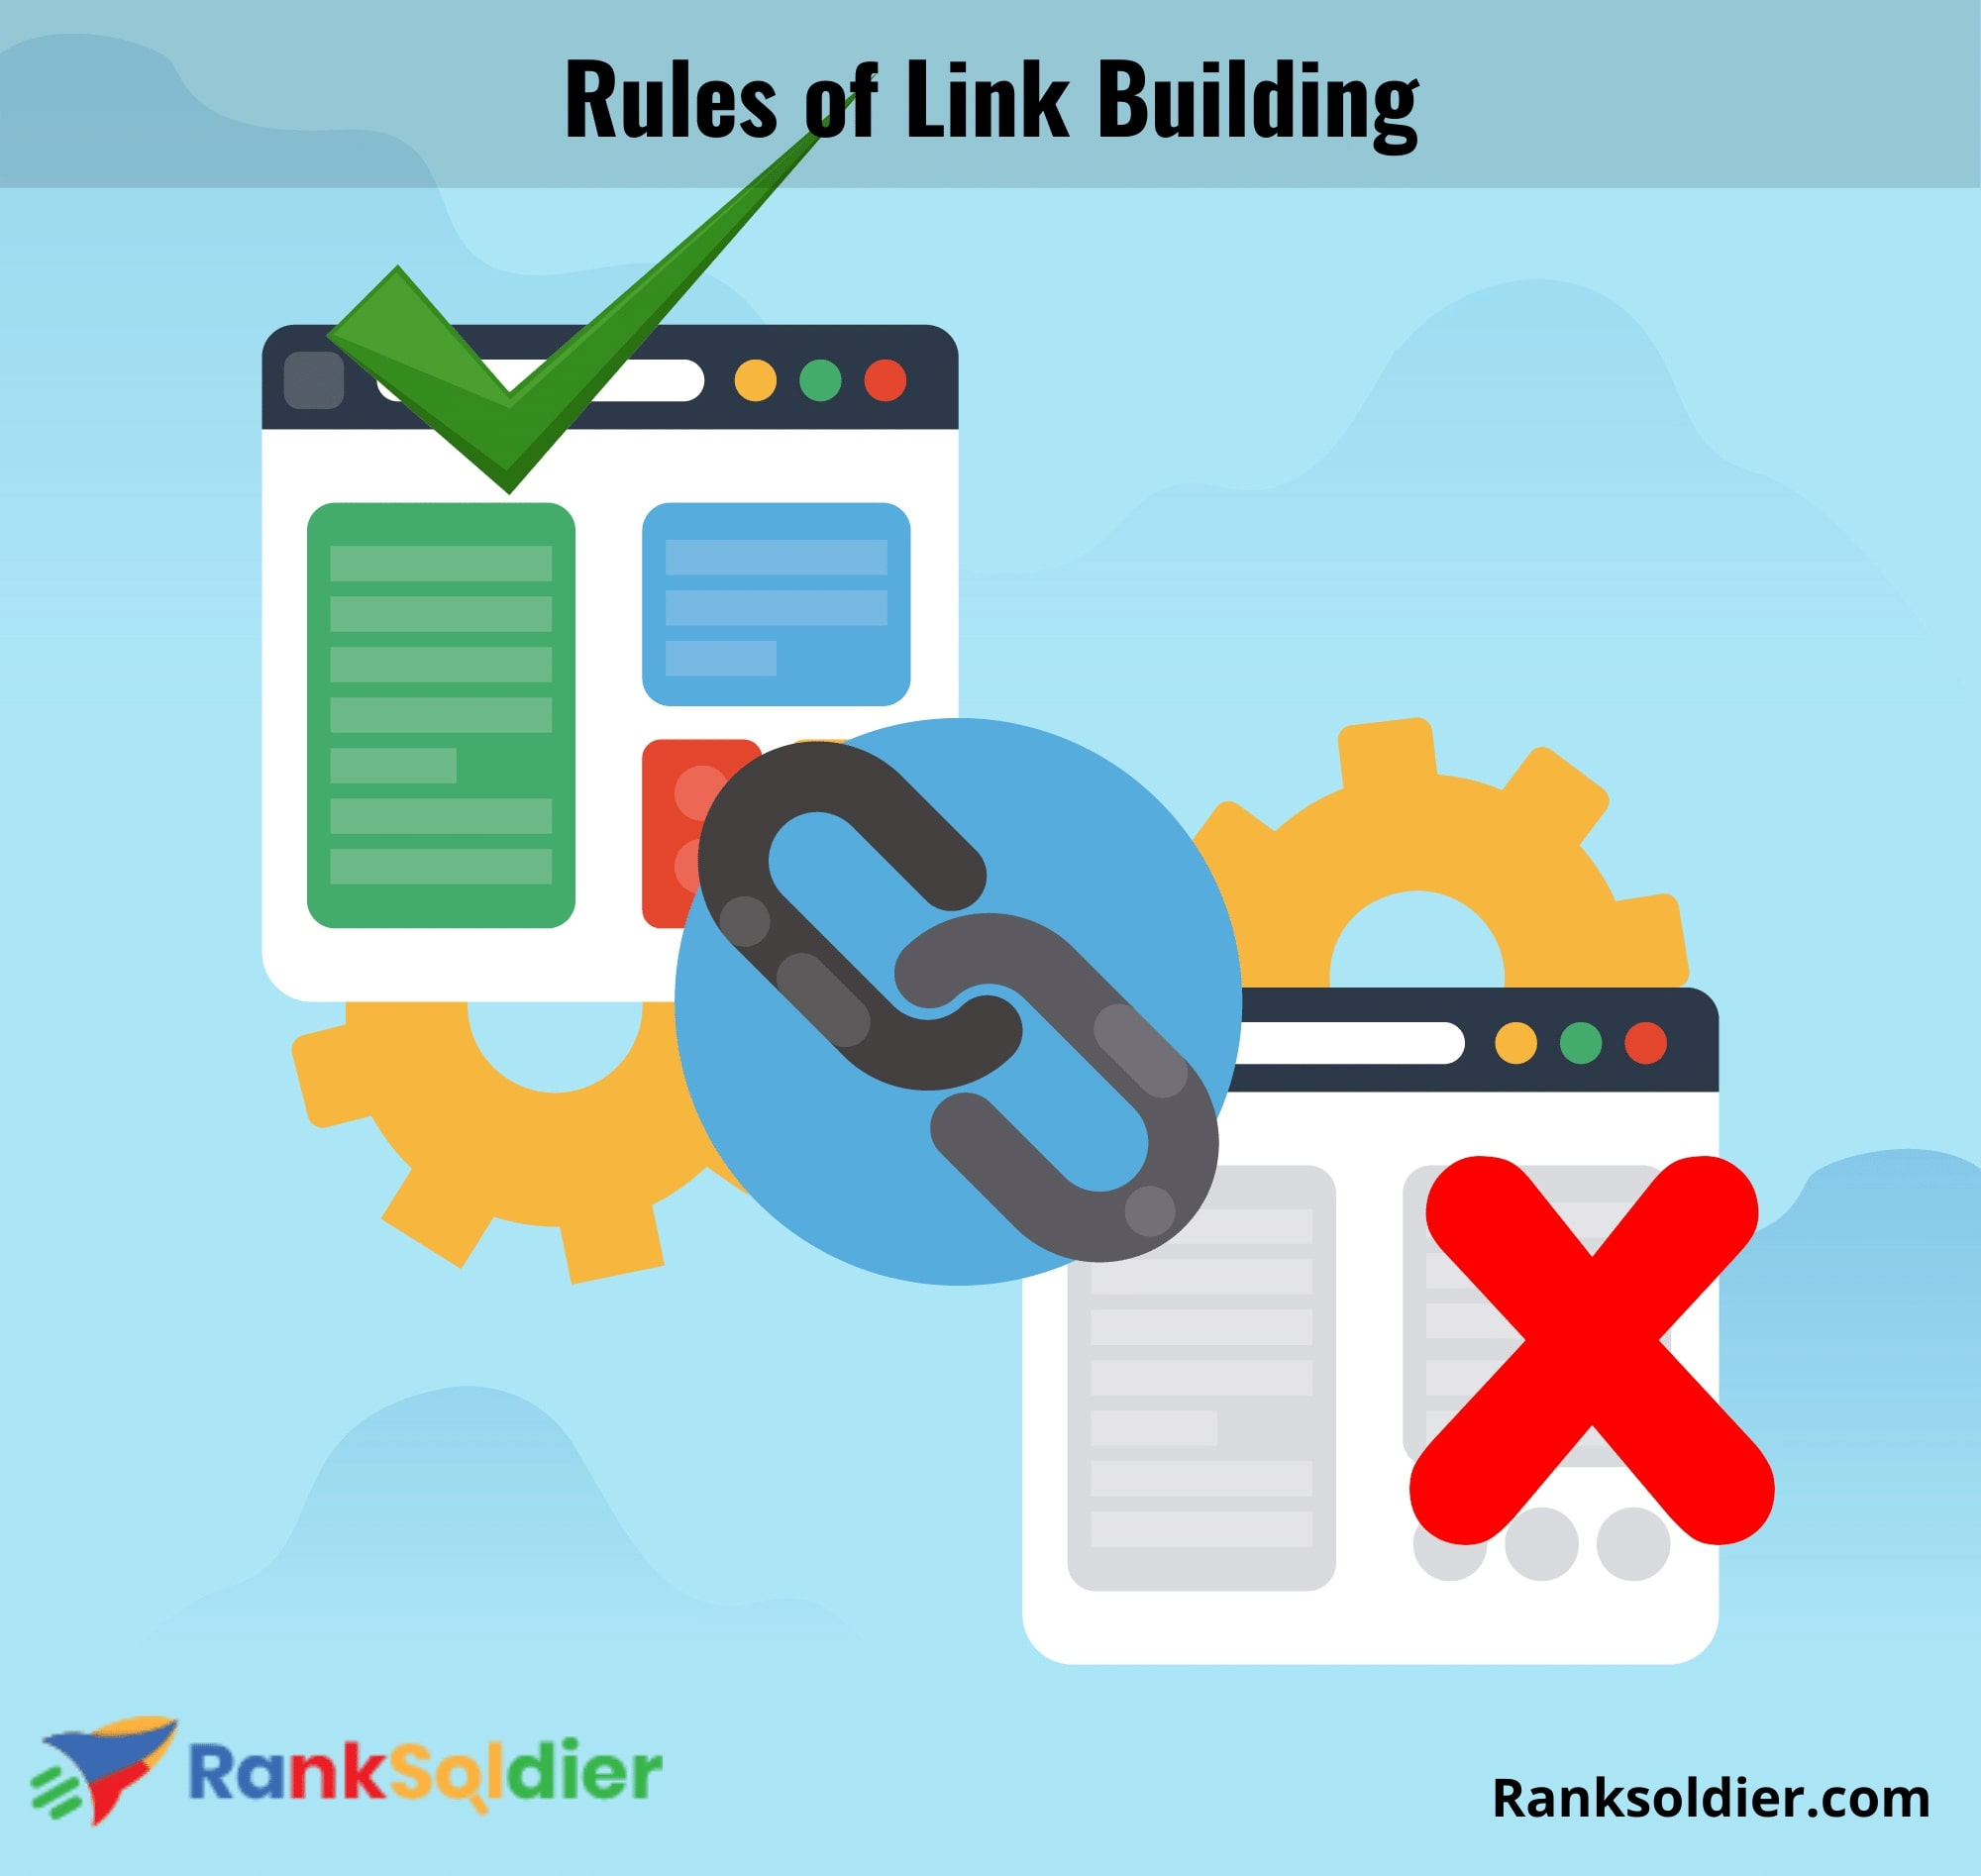 Rules of Link Building